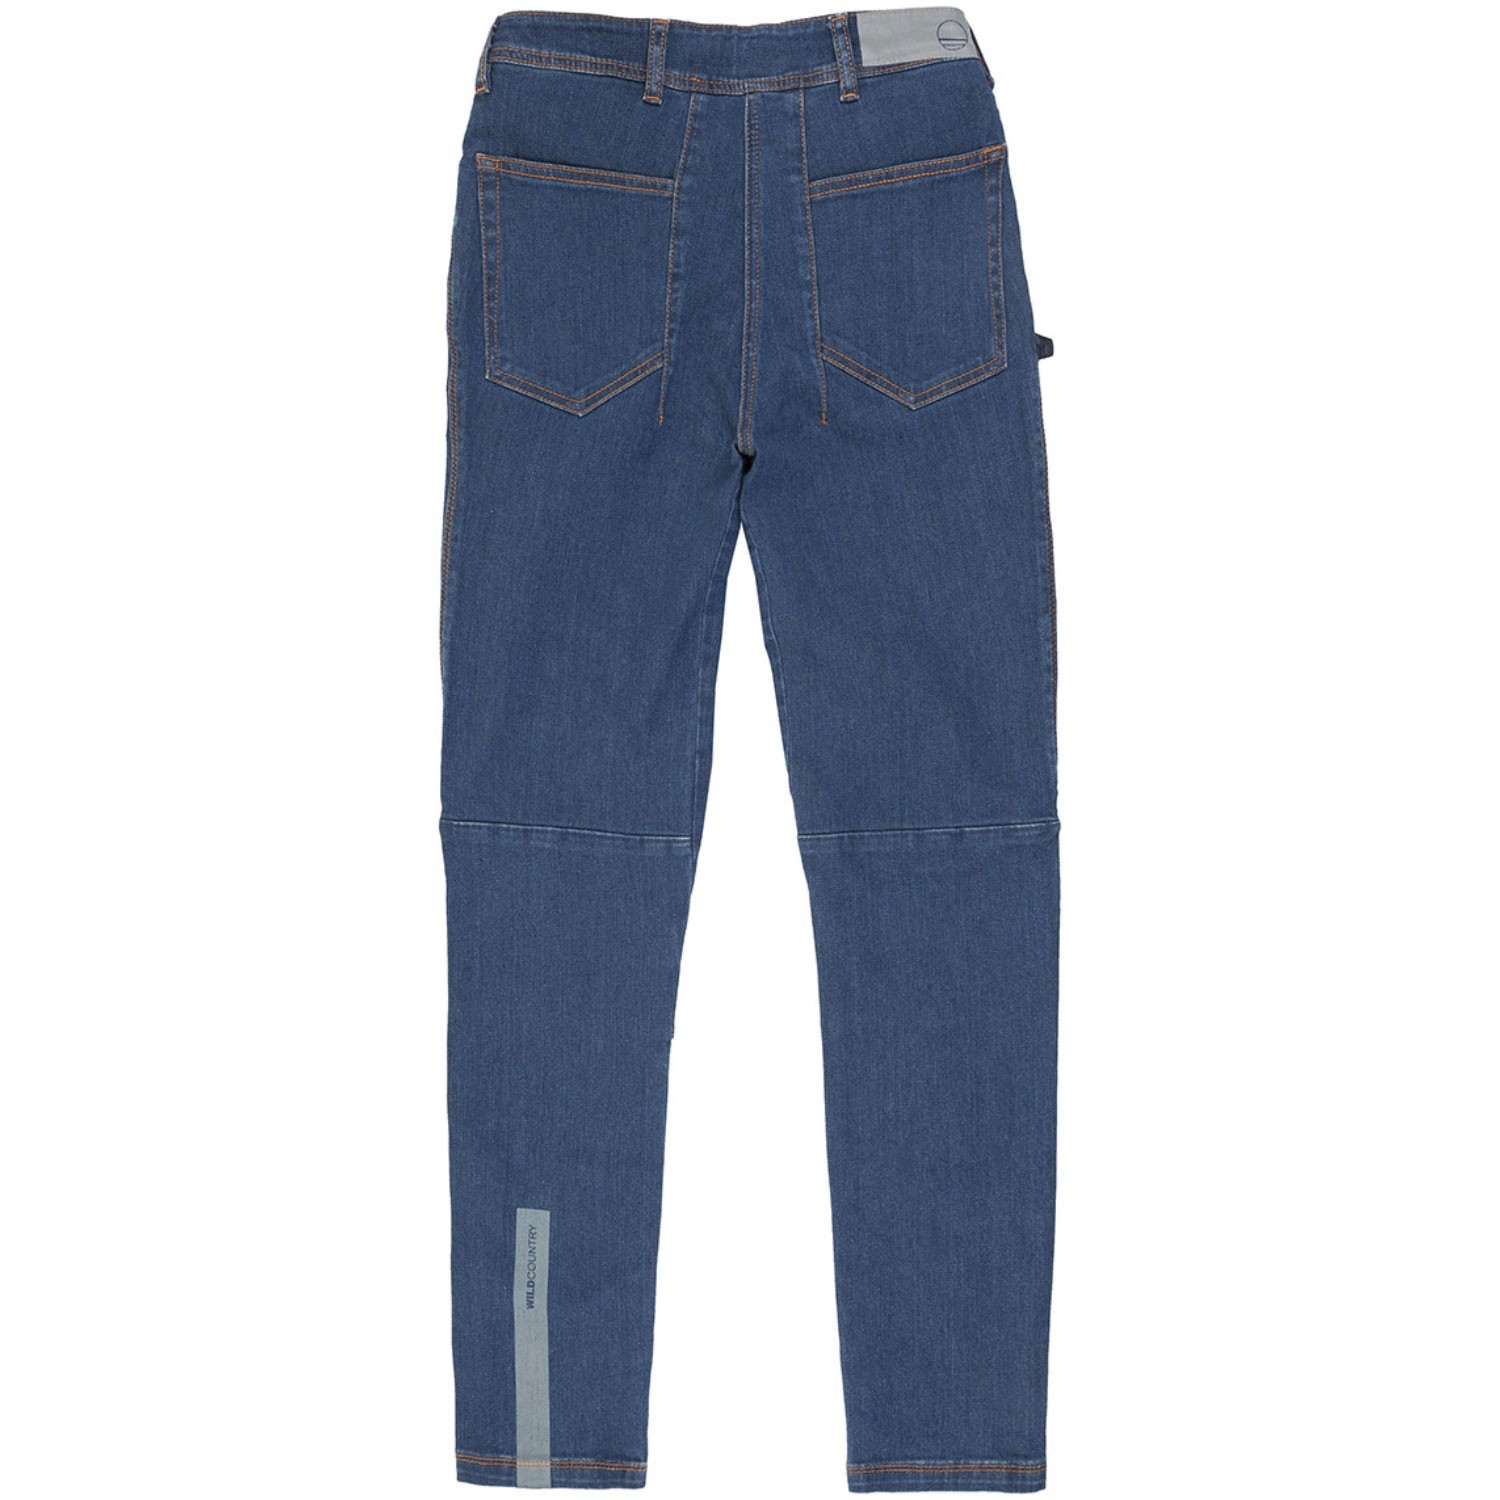 Wild Country Stanage Women's Jeans - Blue